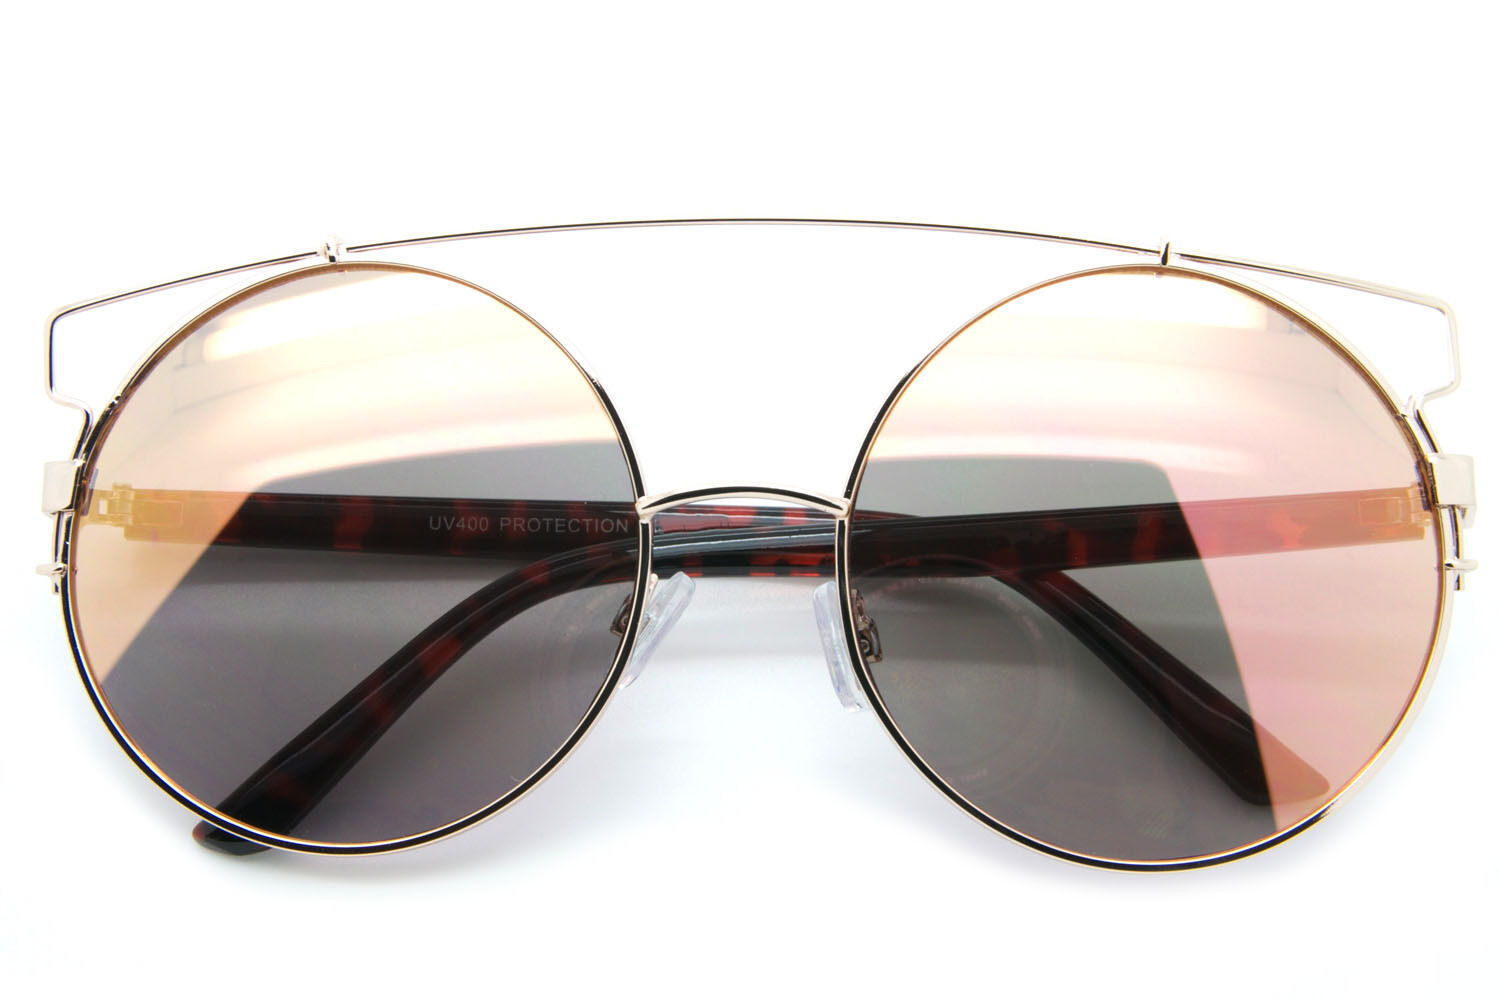 Oleg cassini fashion sunglasses 30